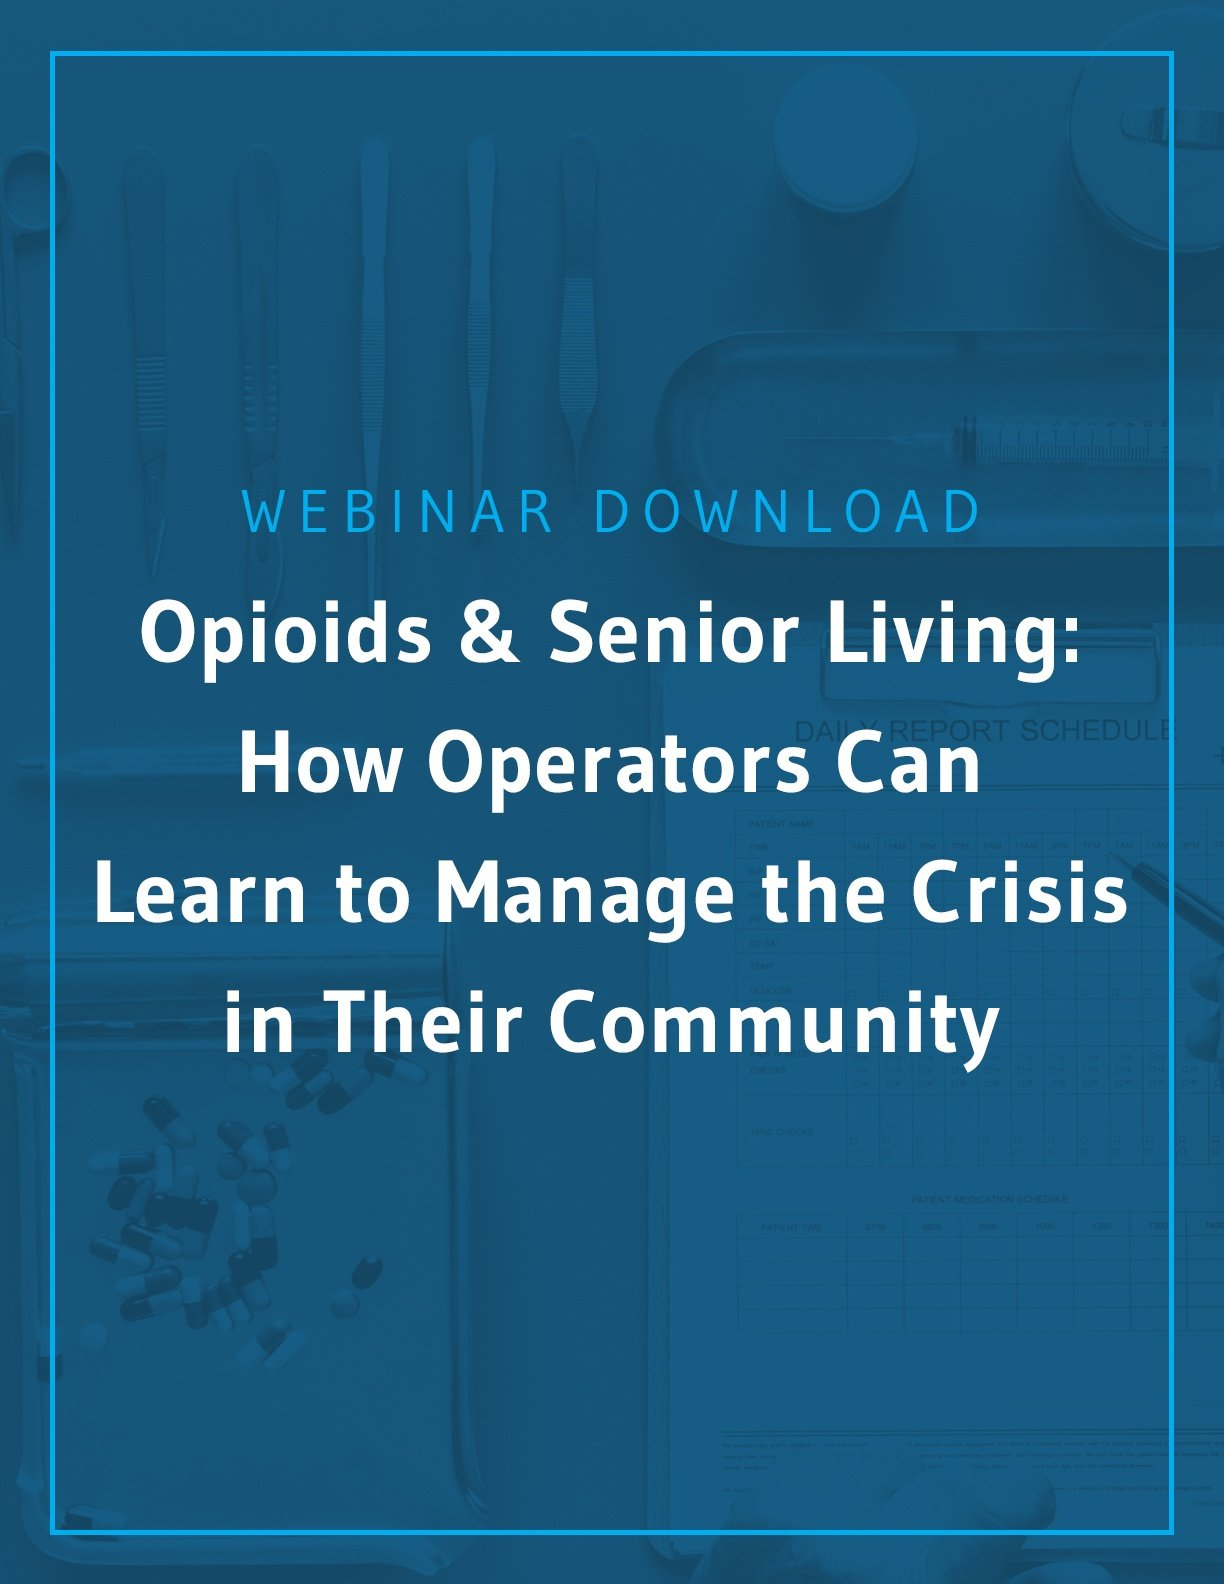 Opioids & Senior Living: How Operators Can Learn to Manage the Crisis in Their Community